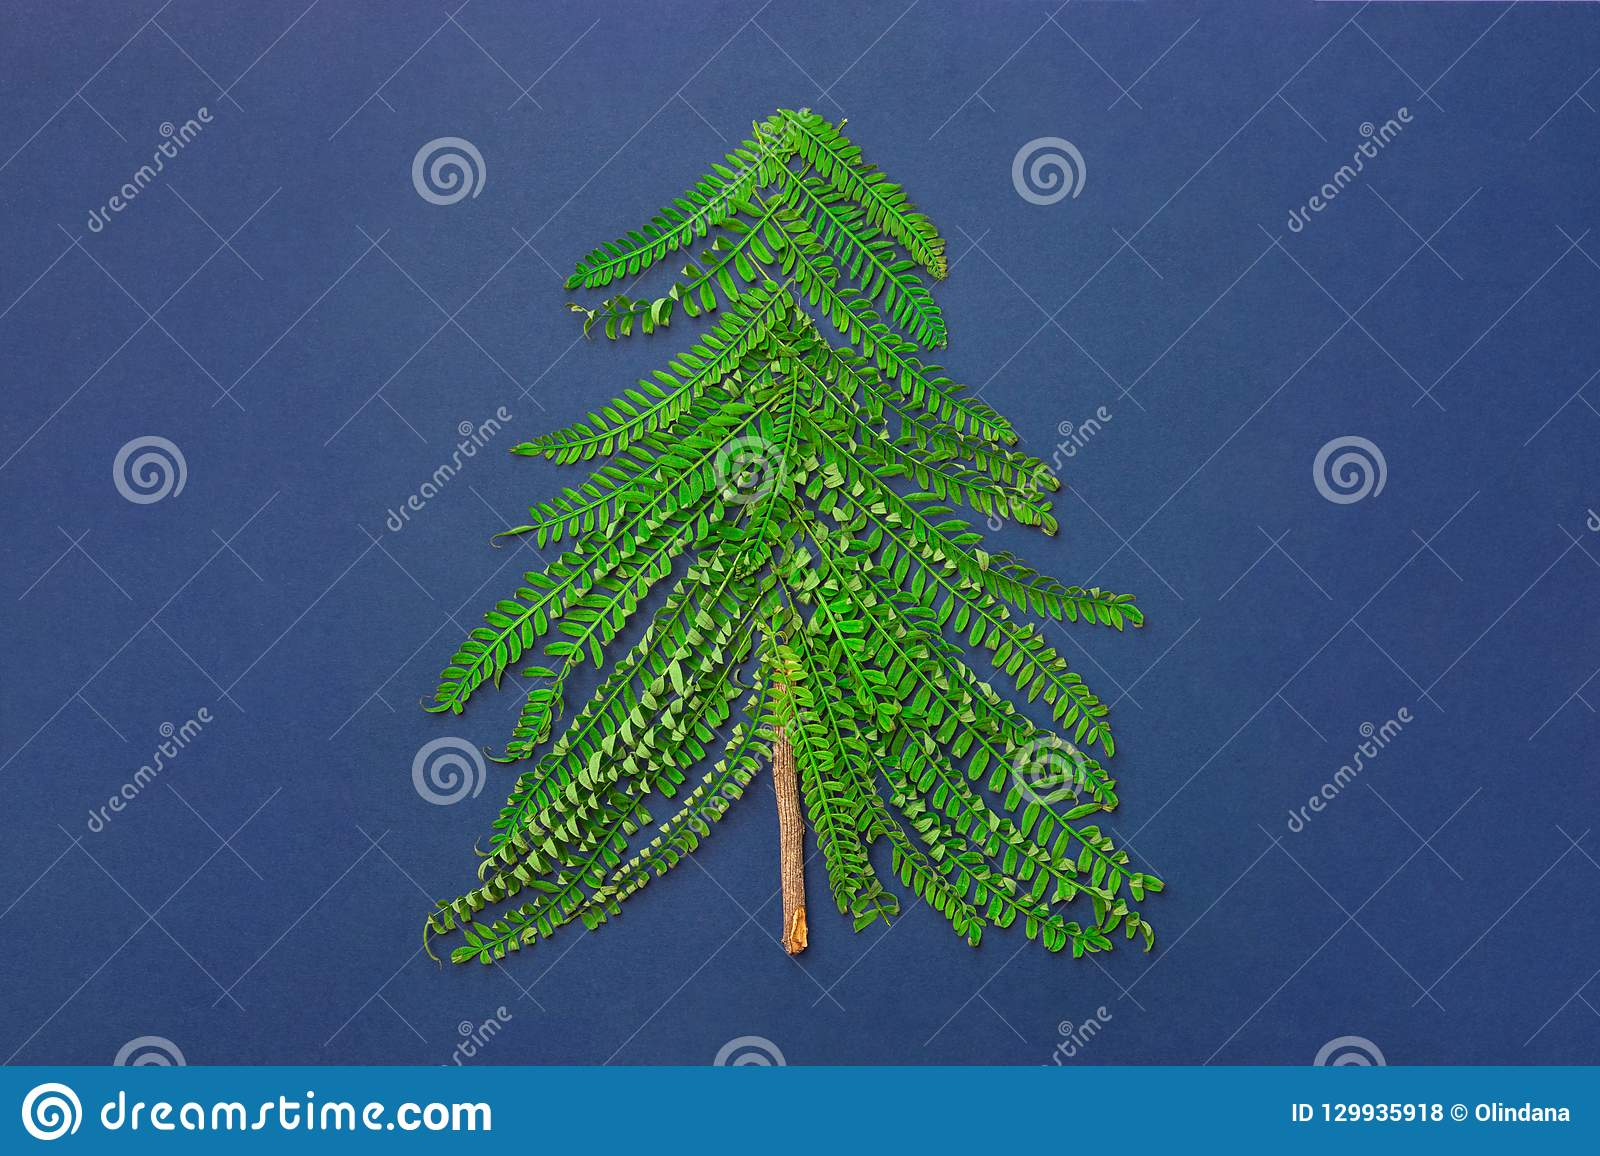 Christmas Tree Made From Green Fern Twigs Branches Wood Knot On Dark